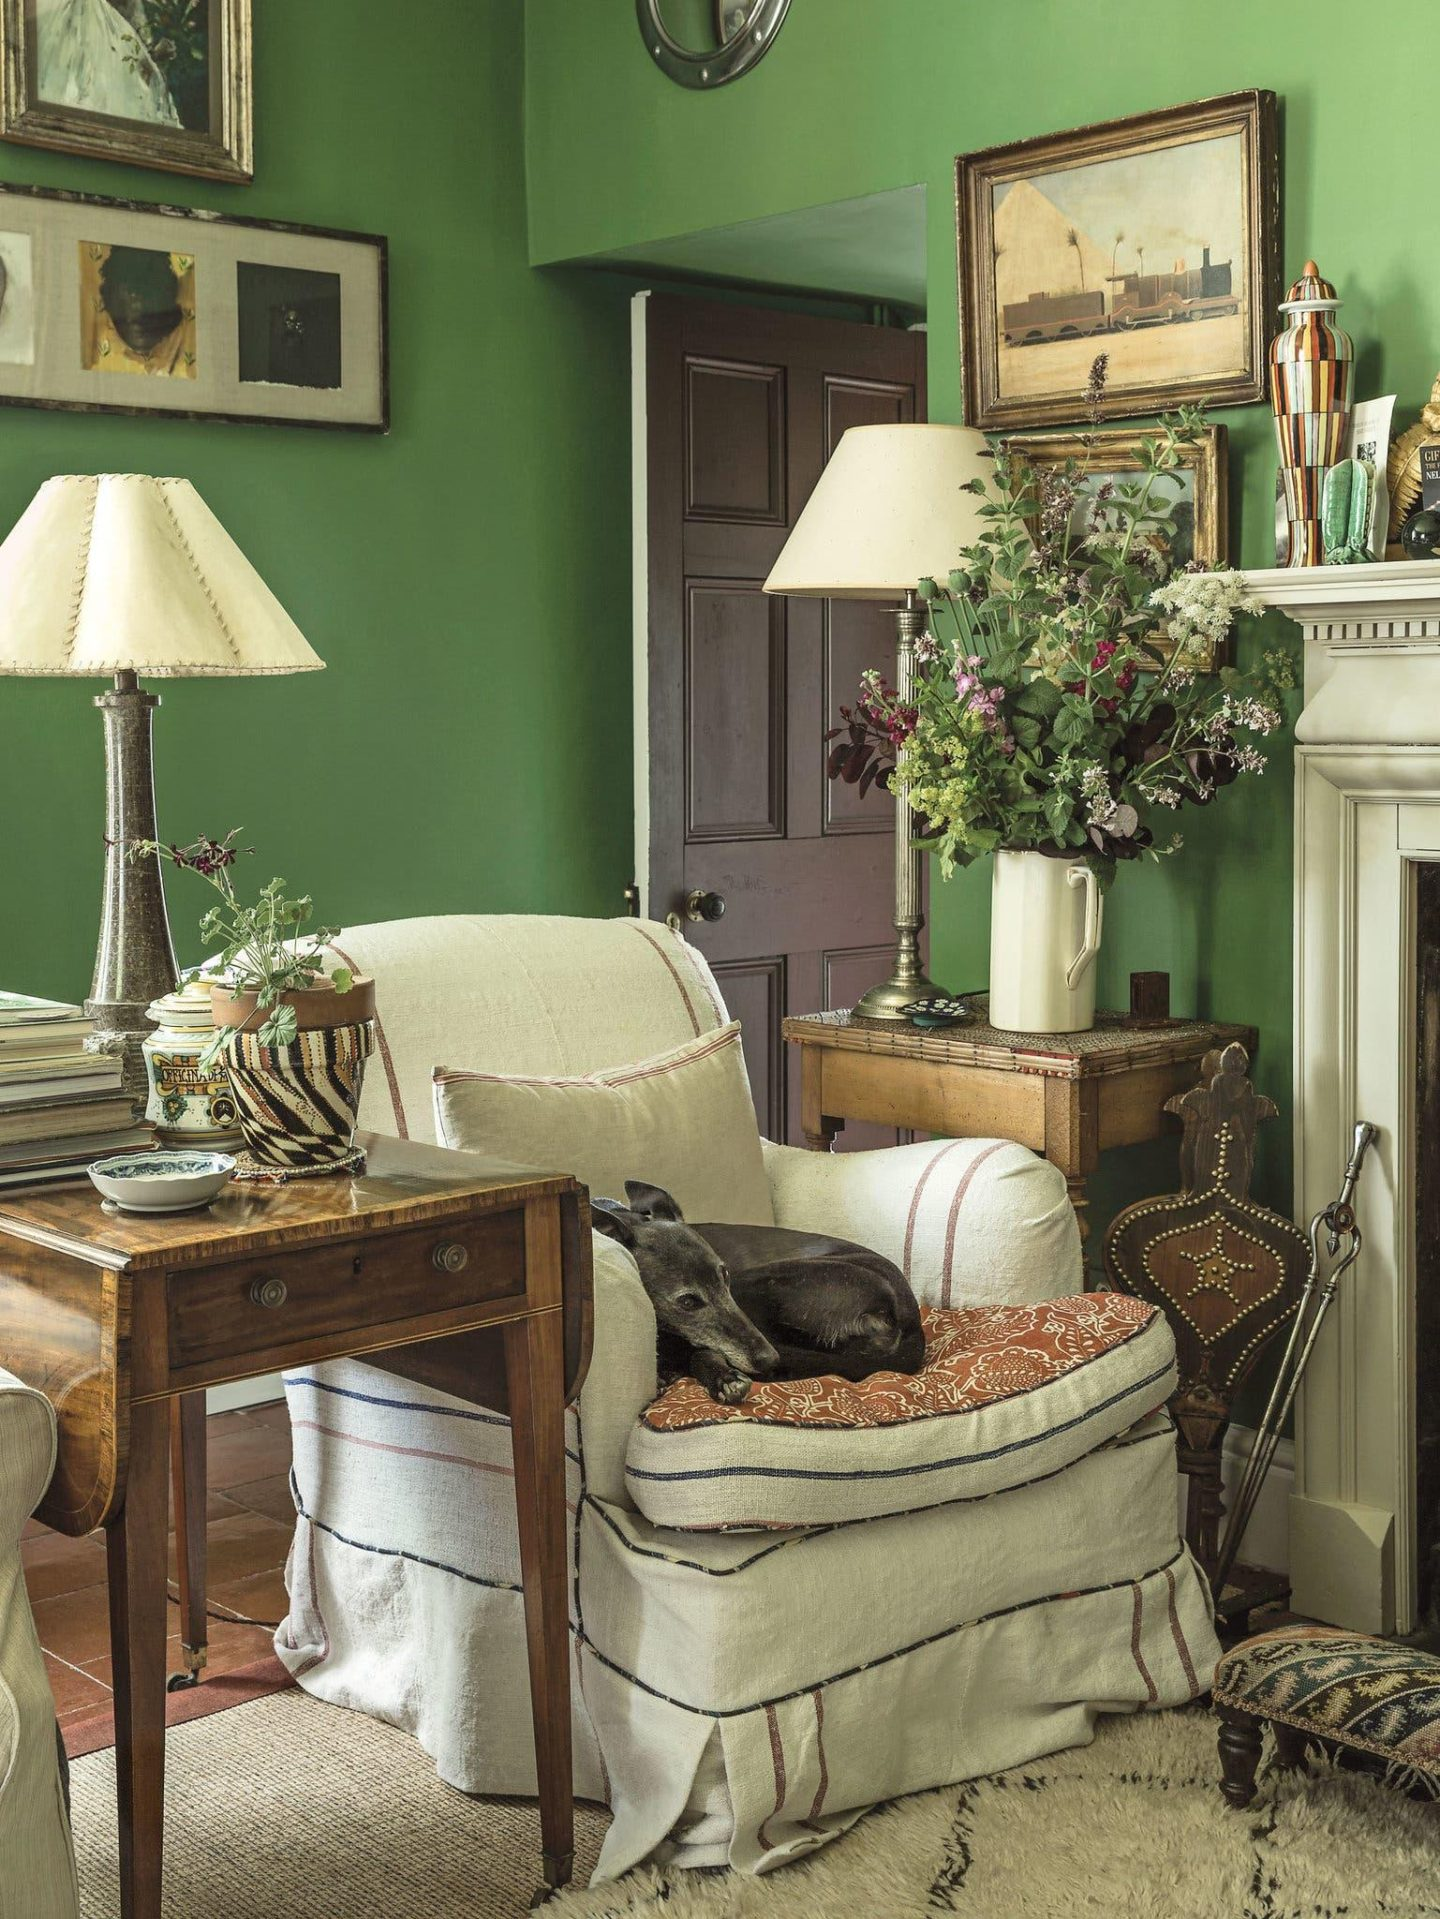 10 Classic Elements for Creating English Cottage Charm in ...